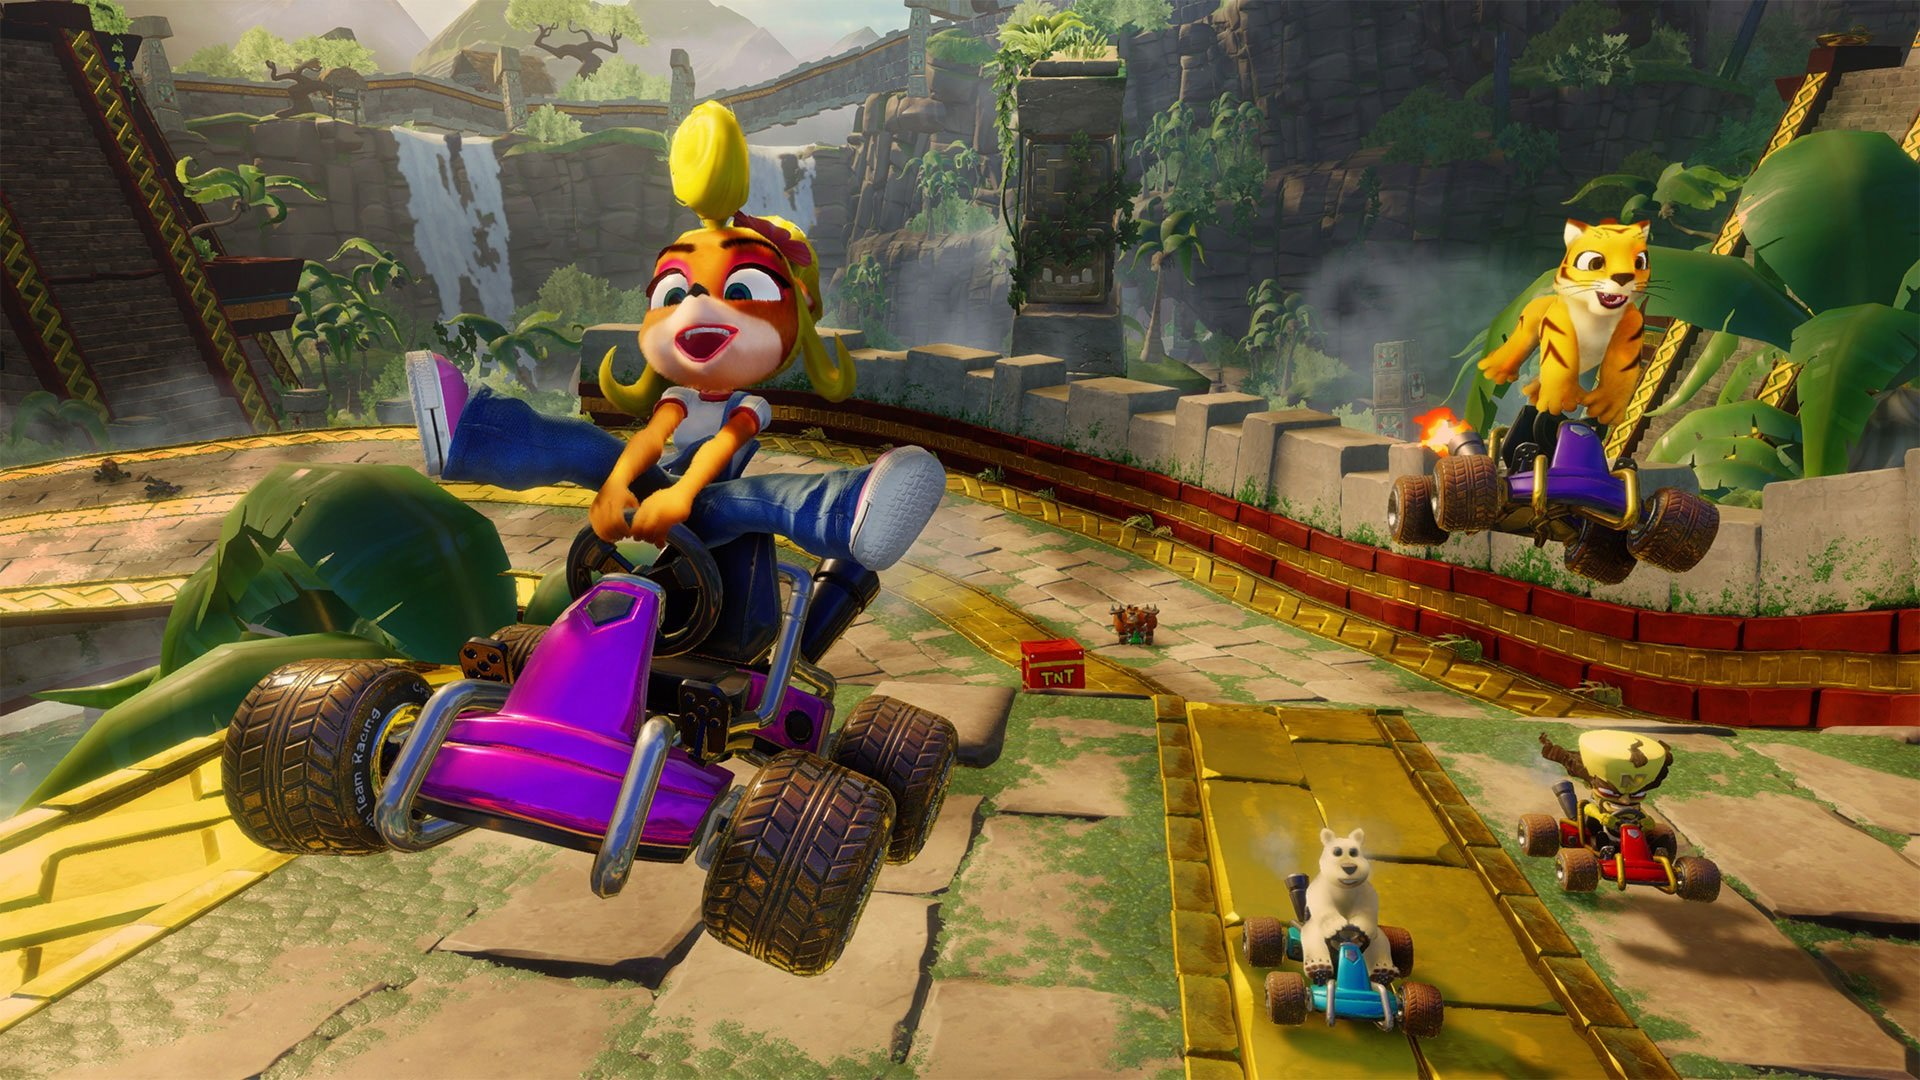 To unlock characters like Penta Penguin, you'll need to enter a special cheat code from the Main Menu of Crash Team Racing Nitro-Fueled.